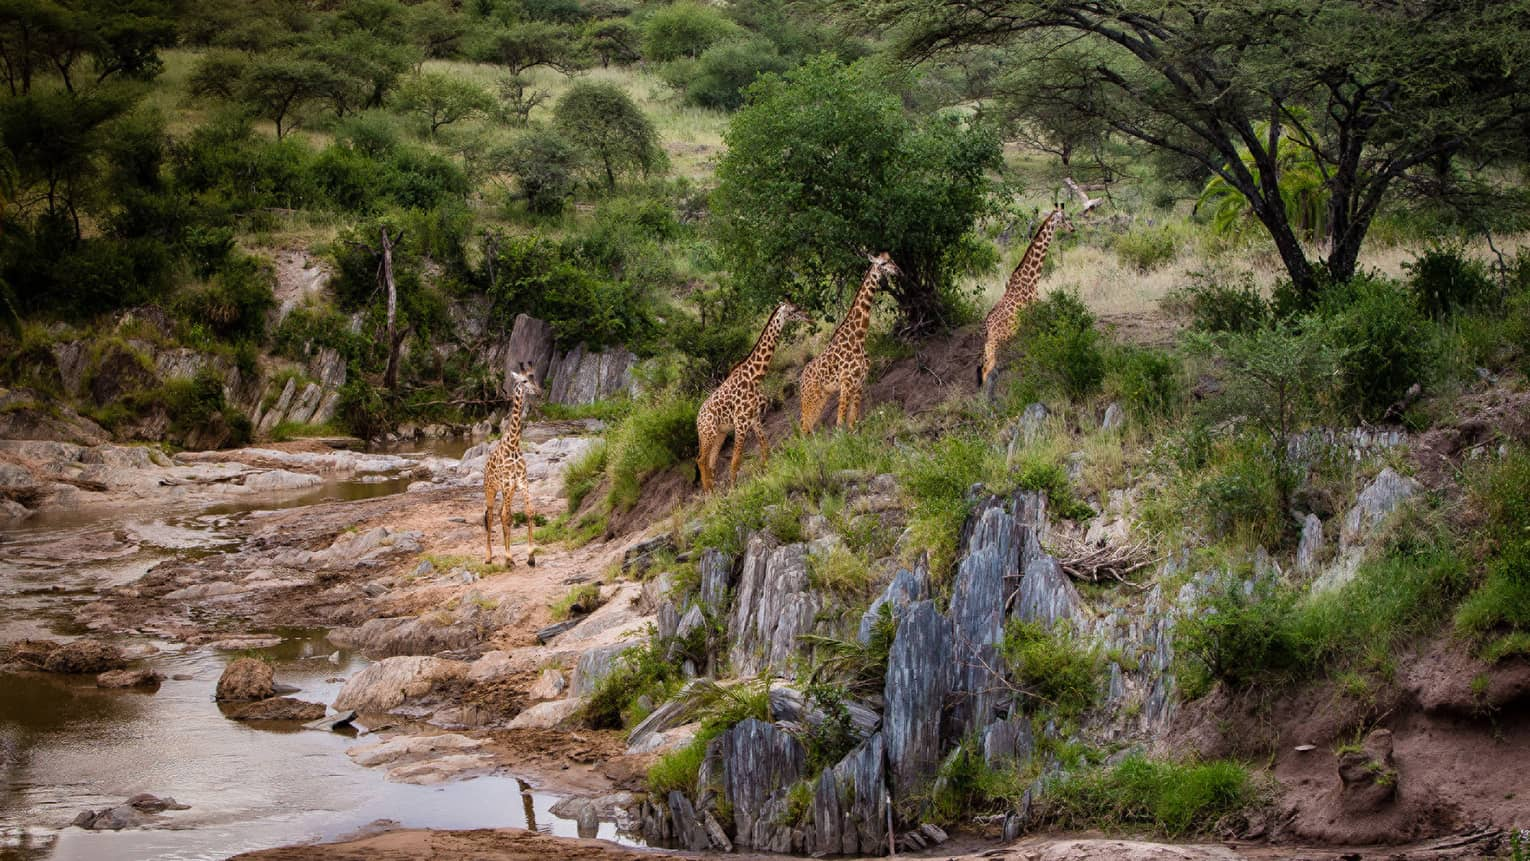 Four tall giraffes walking up rocks along riverbed